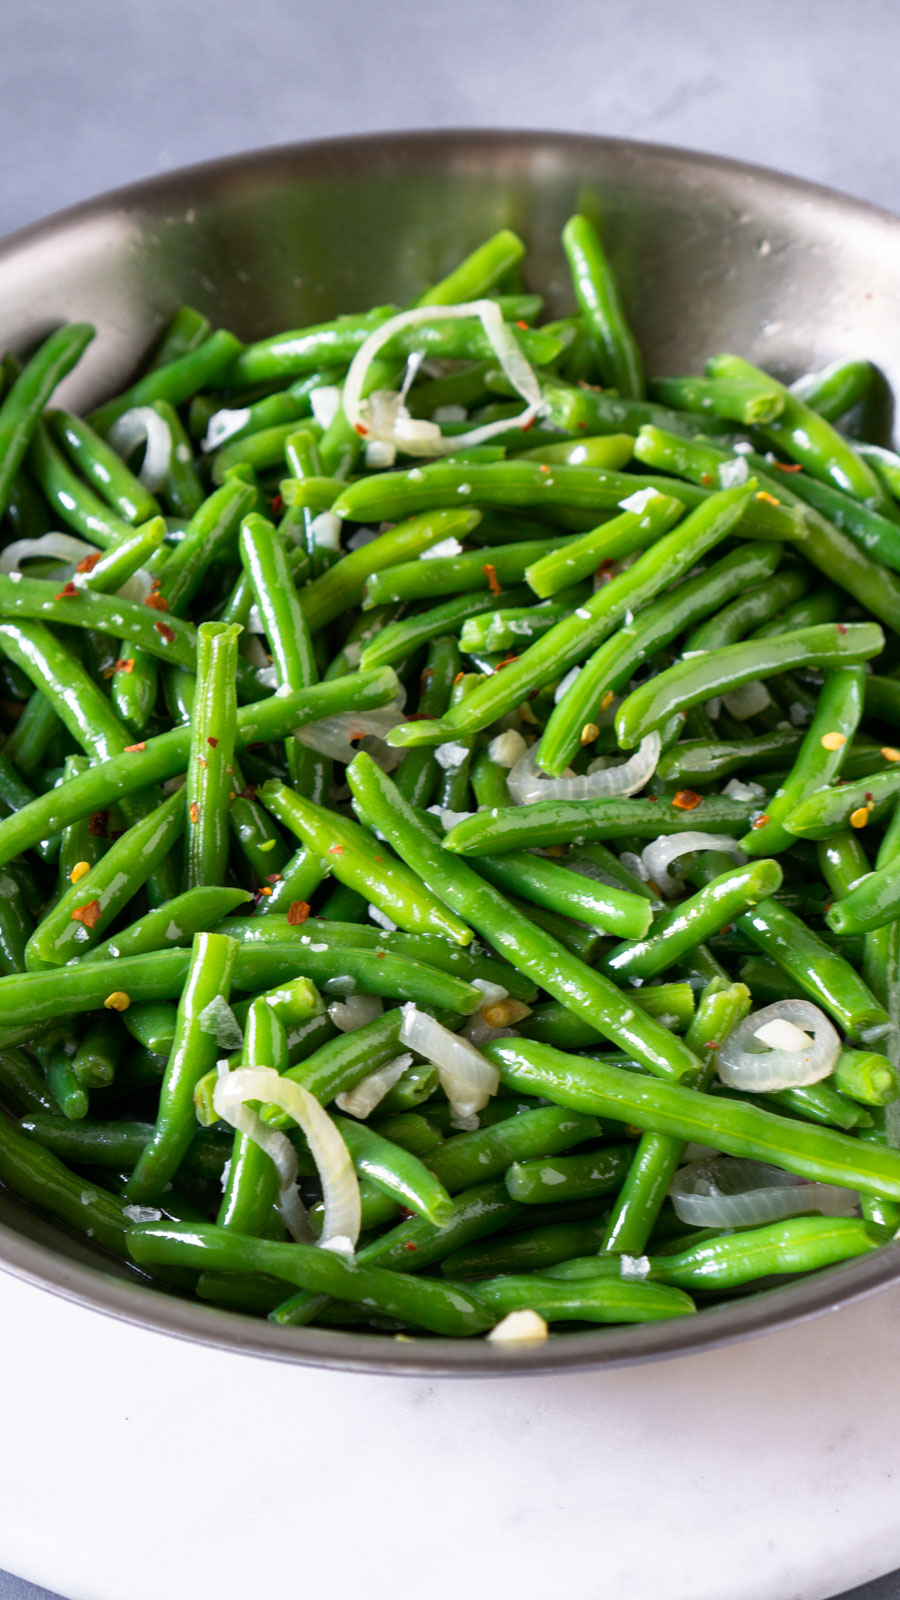 sauteed green beans in a pan